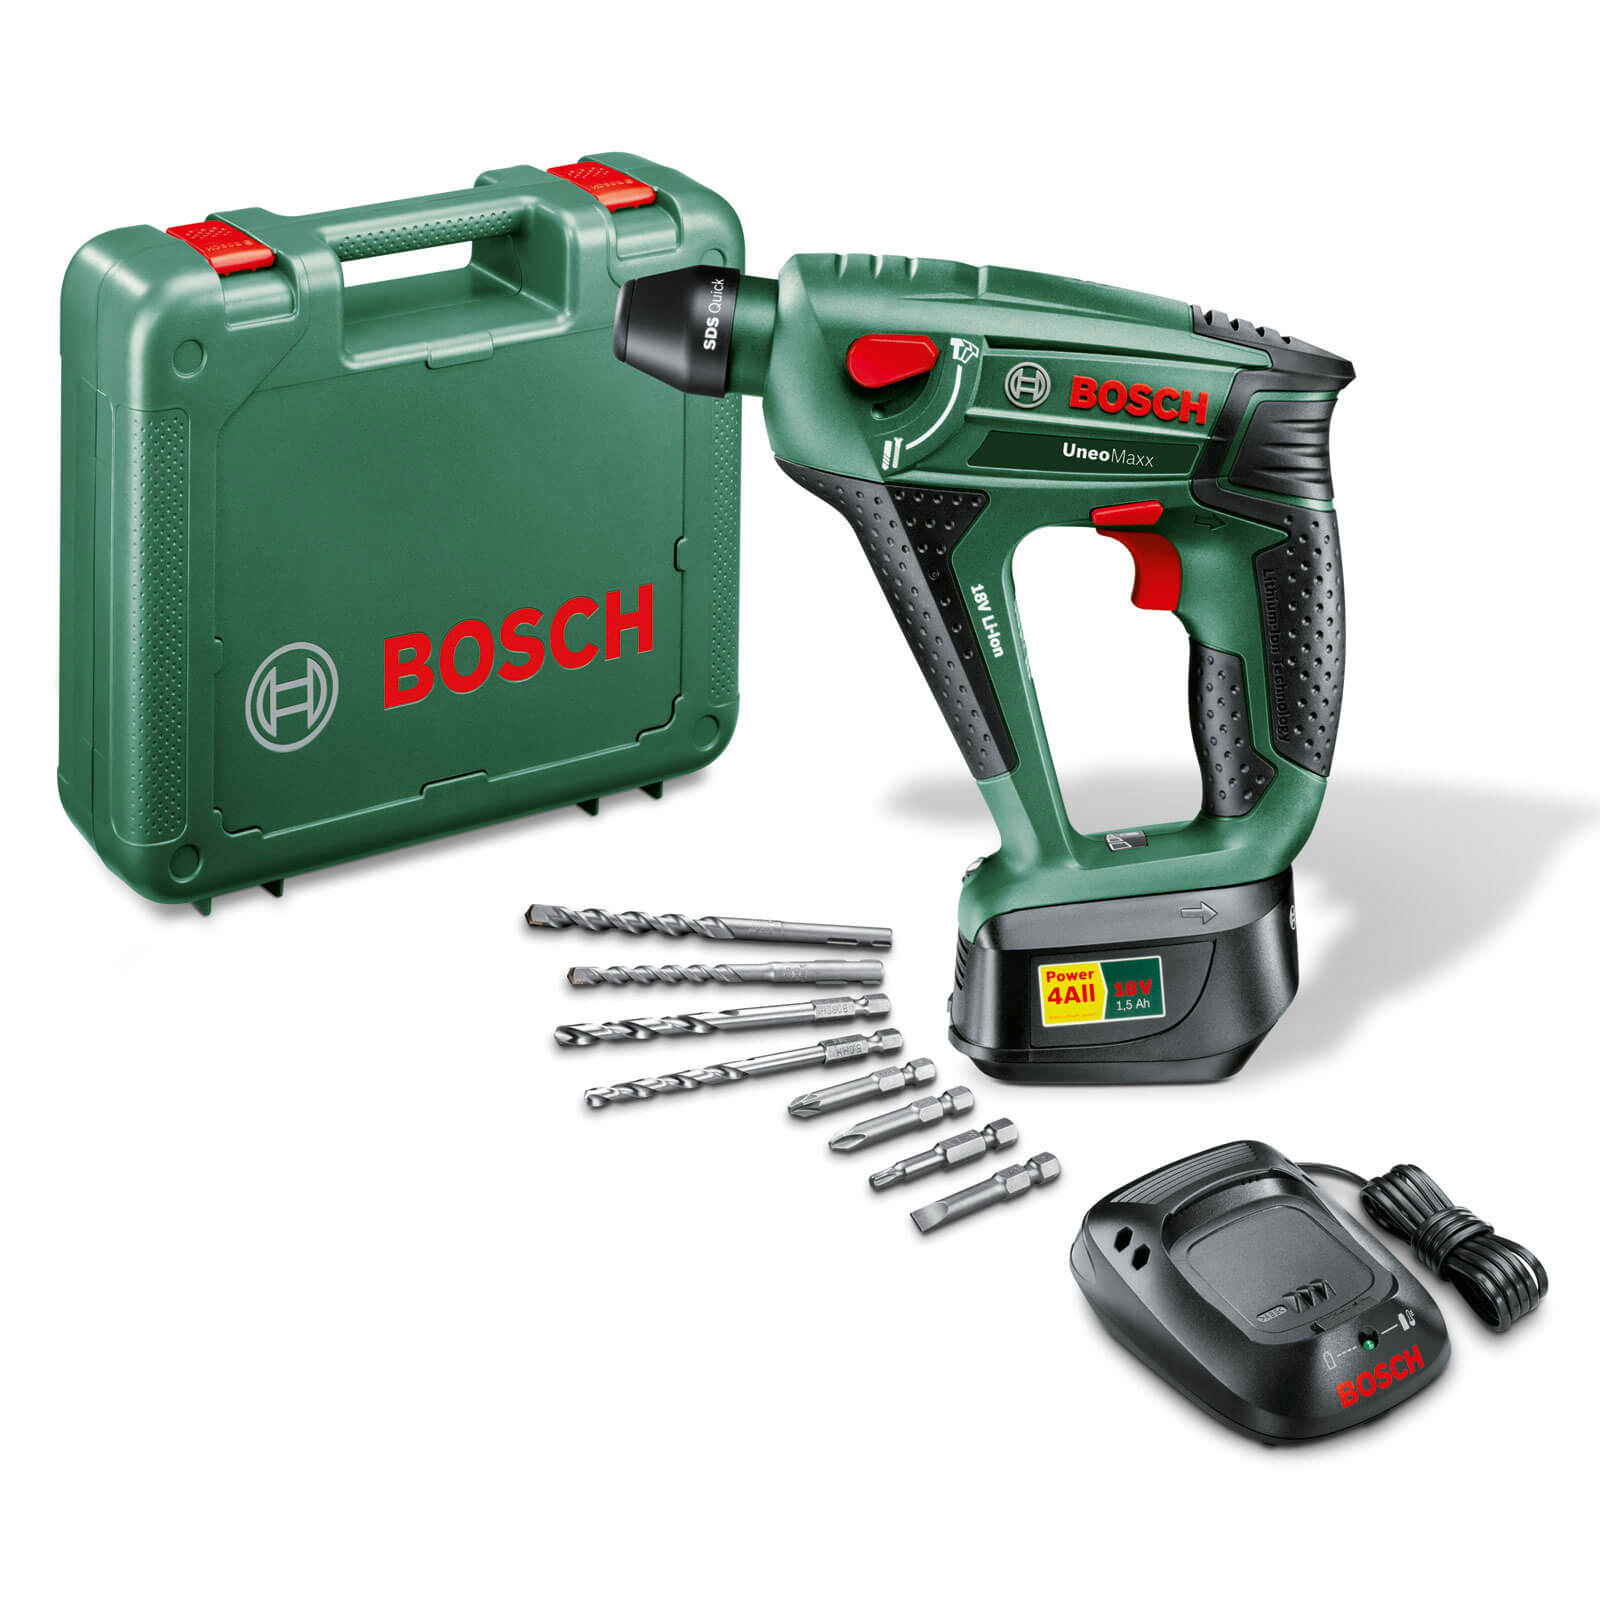 combi drills bosch power4all uneo maxx 18v cordless 3 in 1 sds quick combi drill with 1 lithium. Black Bedroom Furniture Sets. Home Design Ideas